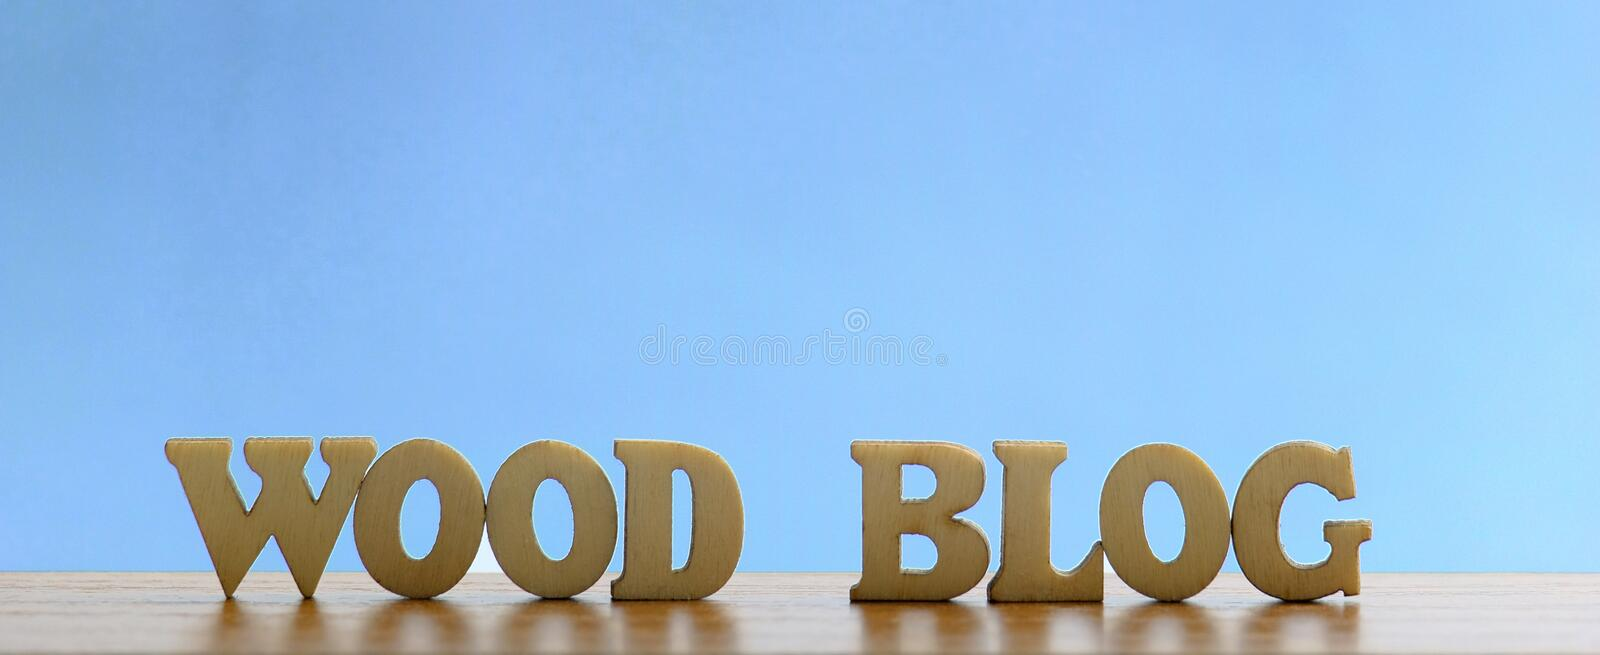 The words WOOD BLOG are made of wooden letters on a blue background. The space above is for an inscription or logo. royalty free stock photography